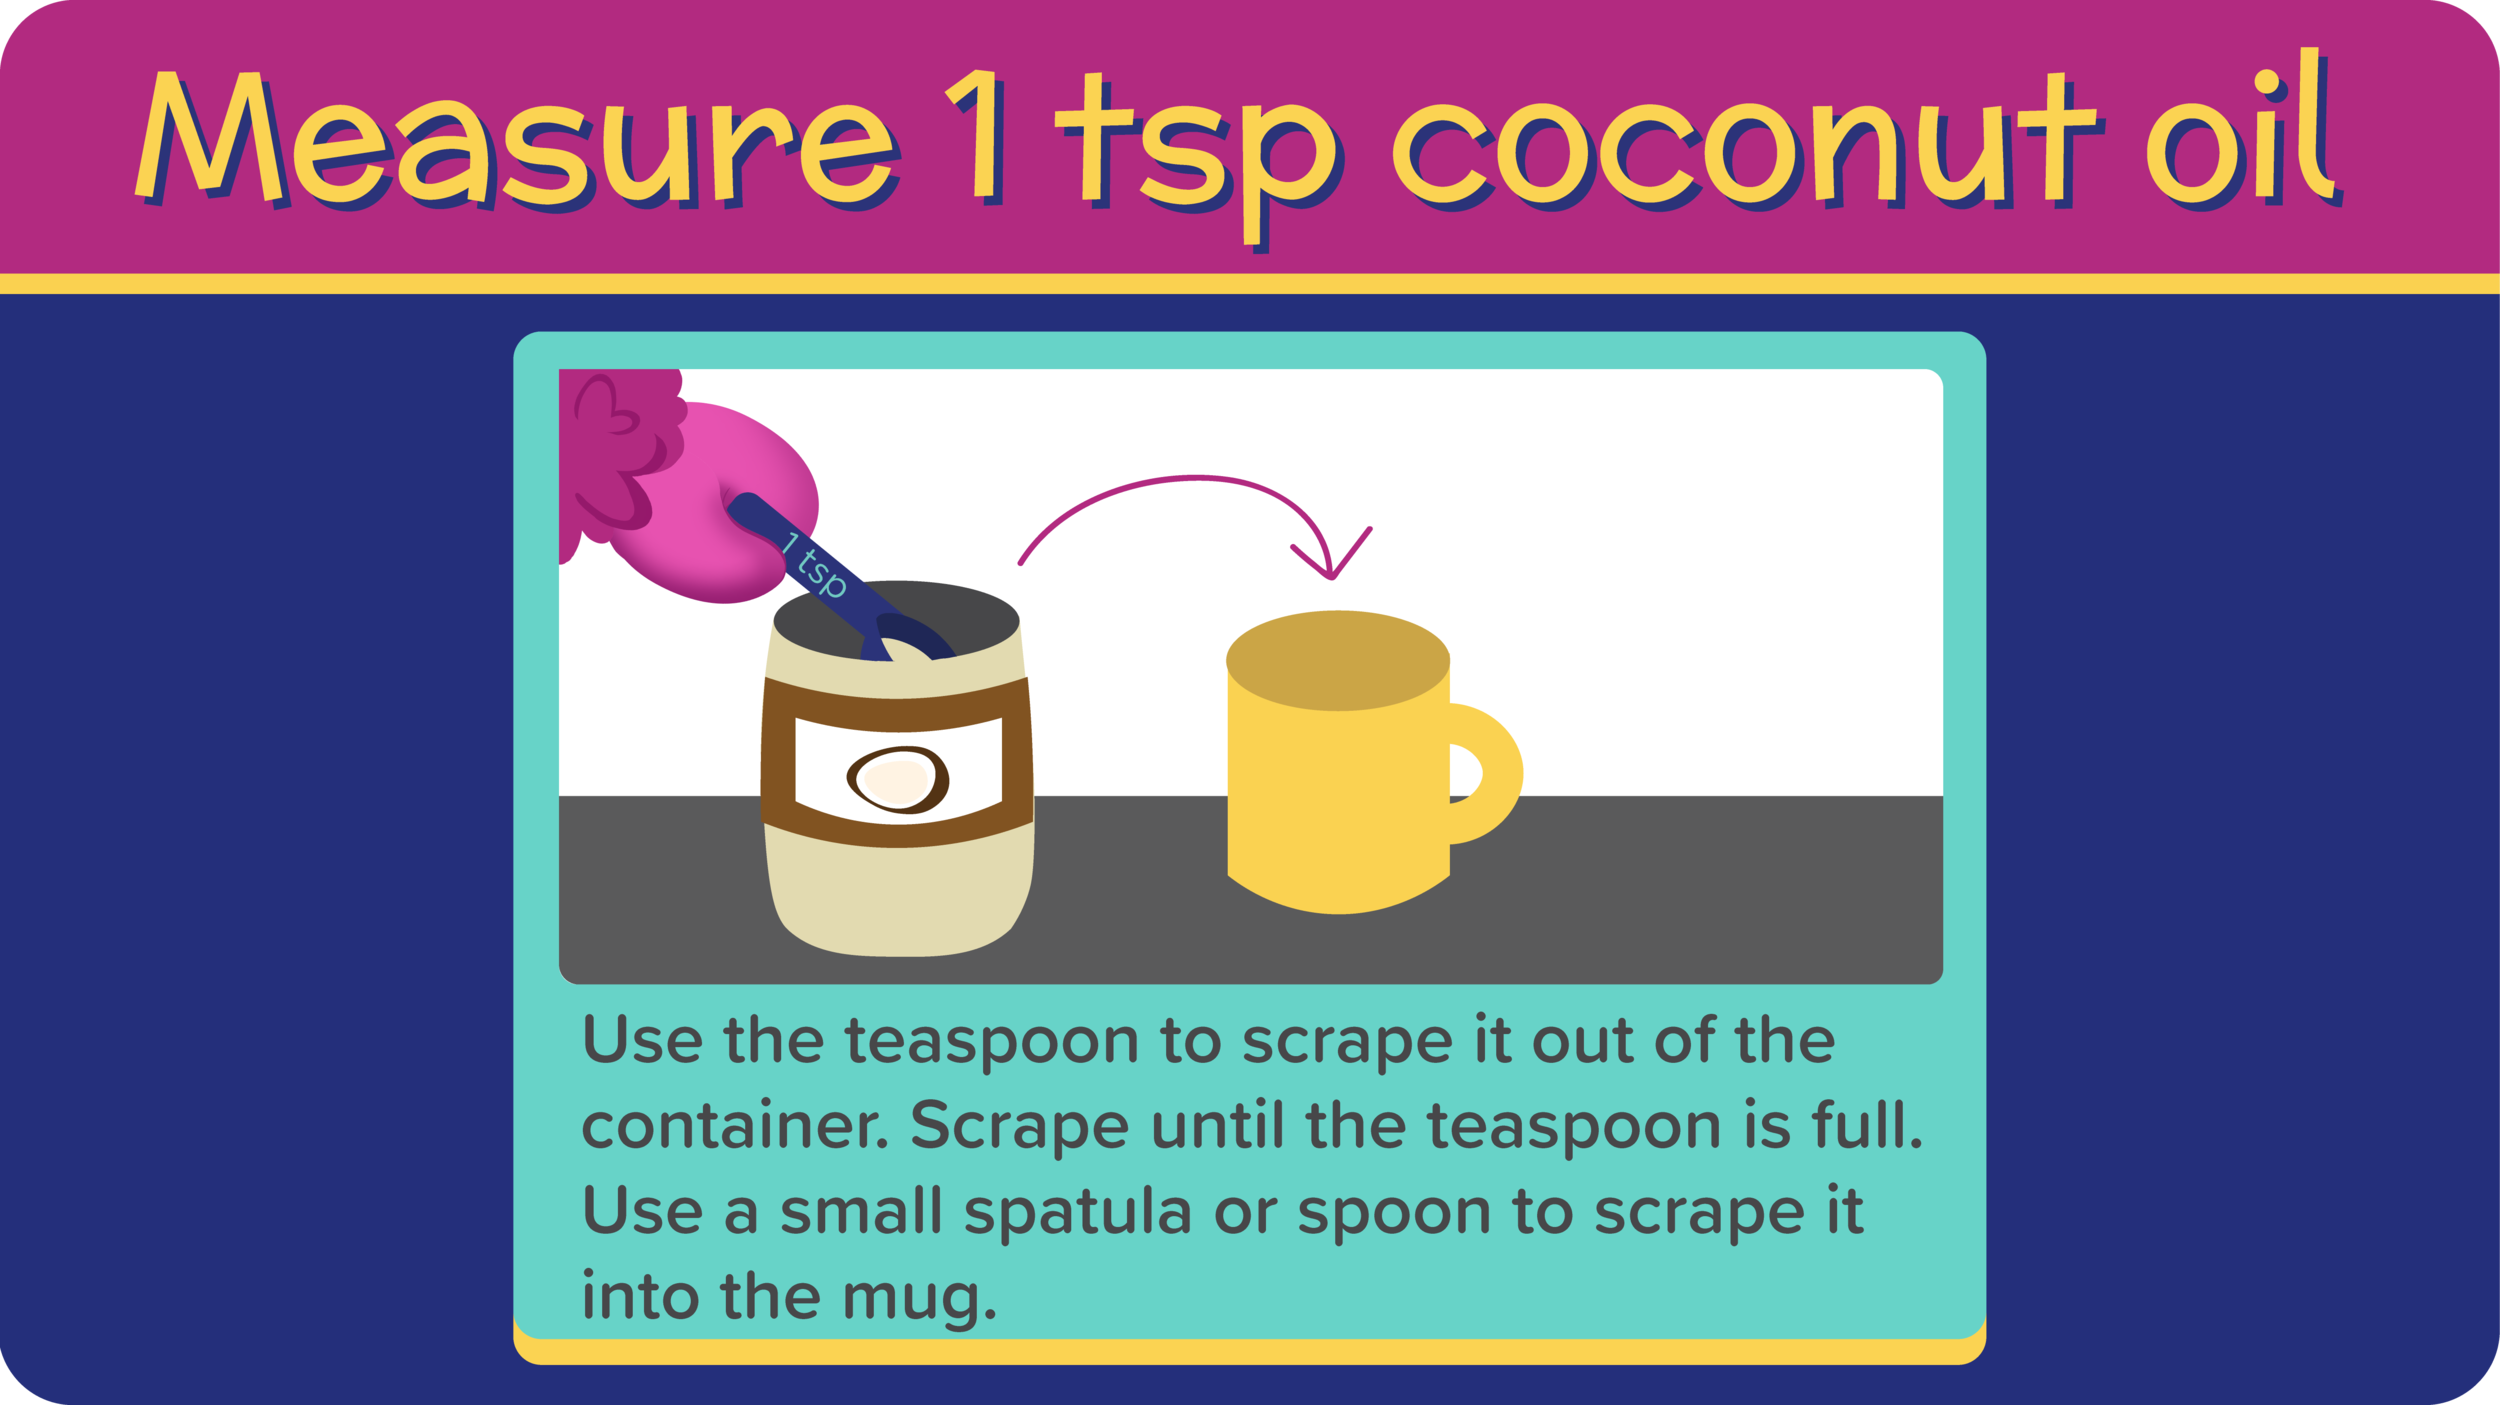 12_BlueberryMugMuffin_coconut oil-01.png